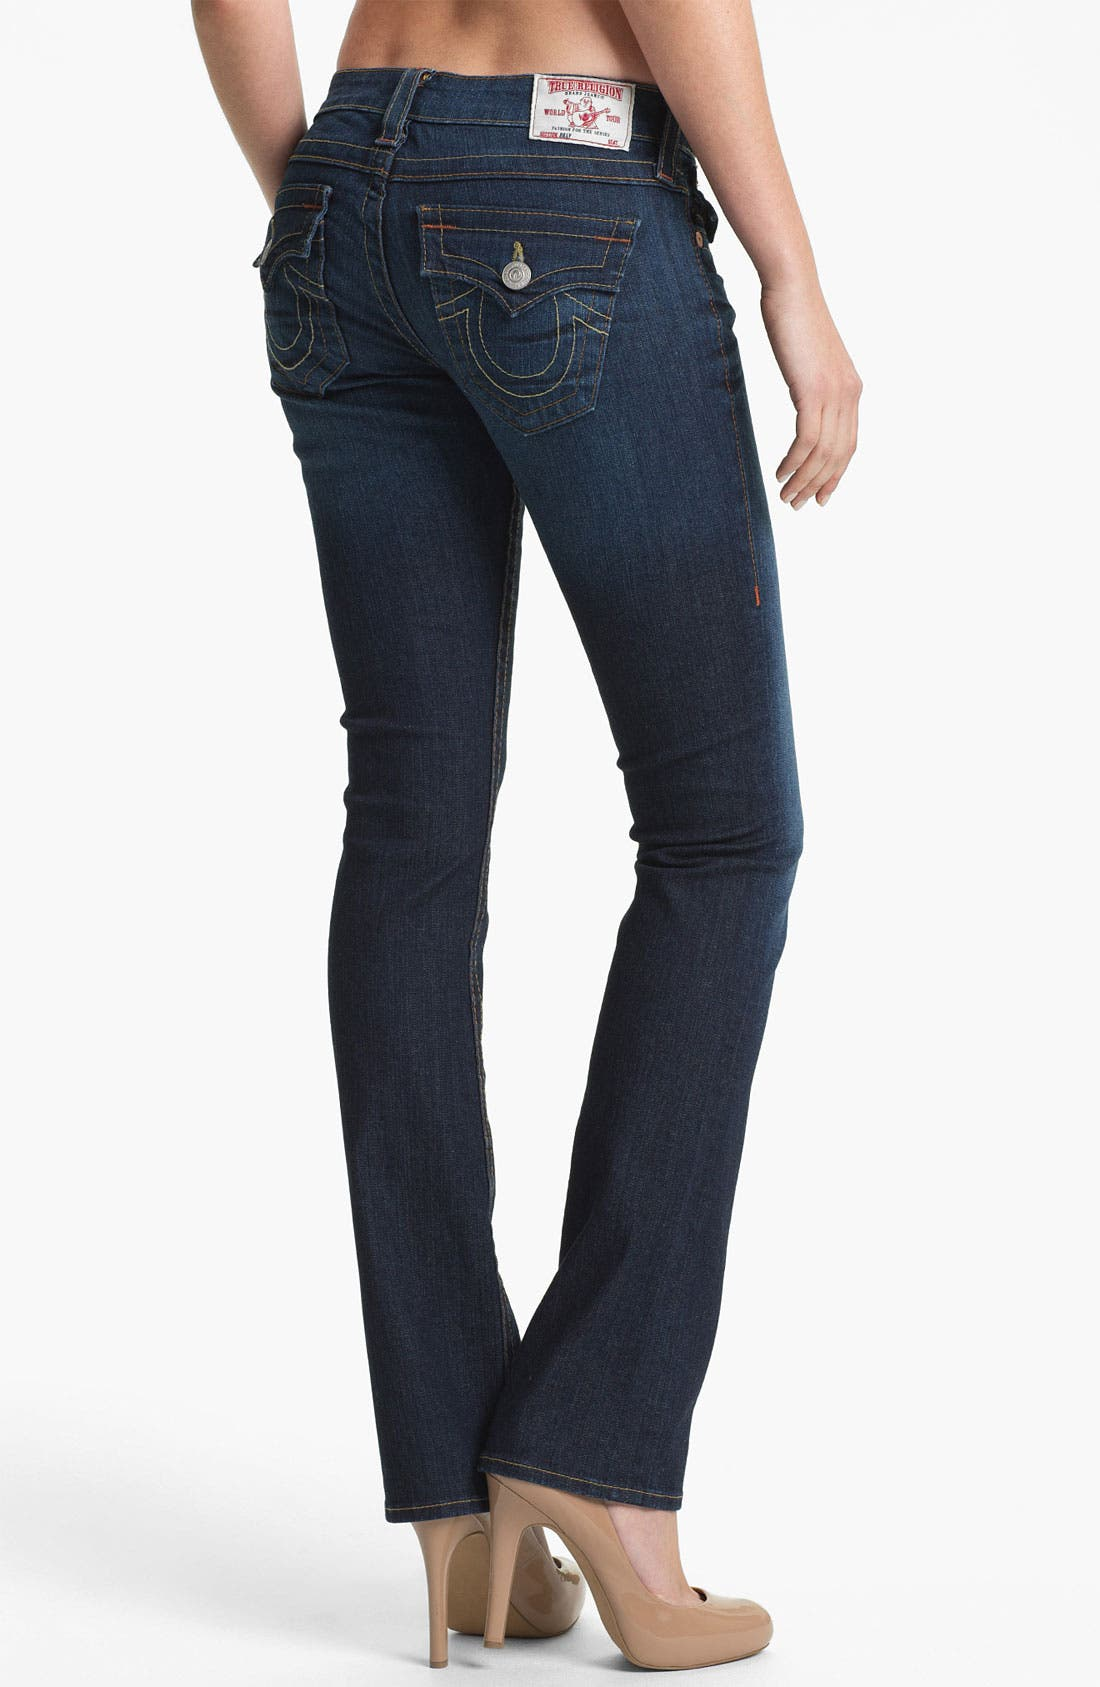 Alternate Image 2  - True Religion Brand Jeans 'Billy' Straight Leg Stretch Jeans (Last Chance)